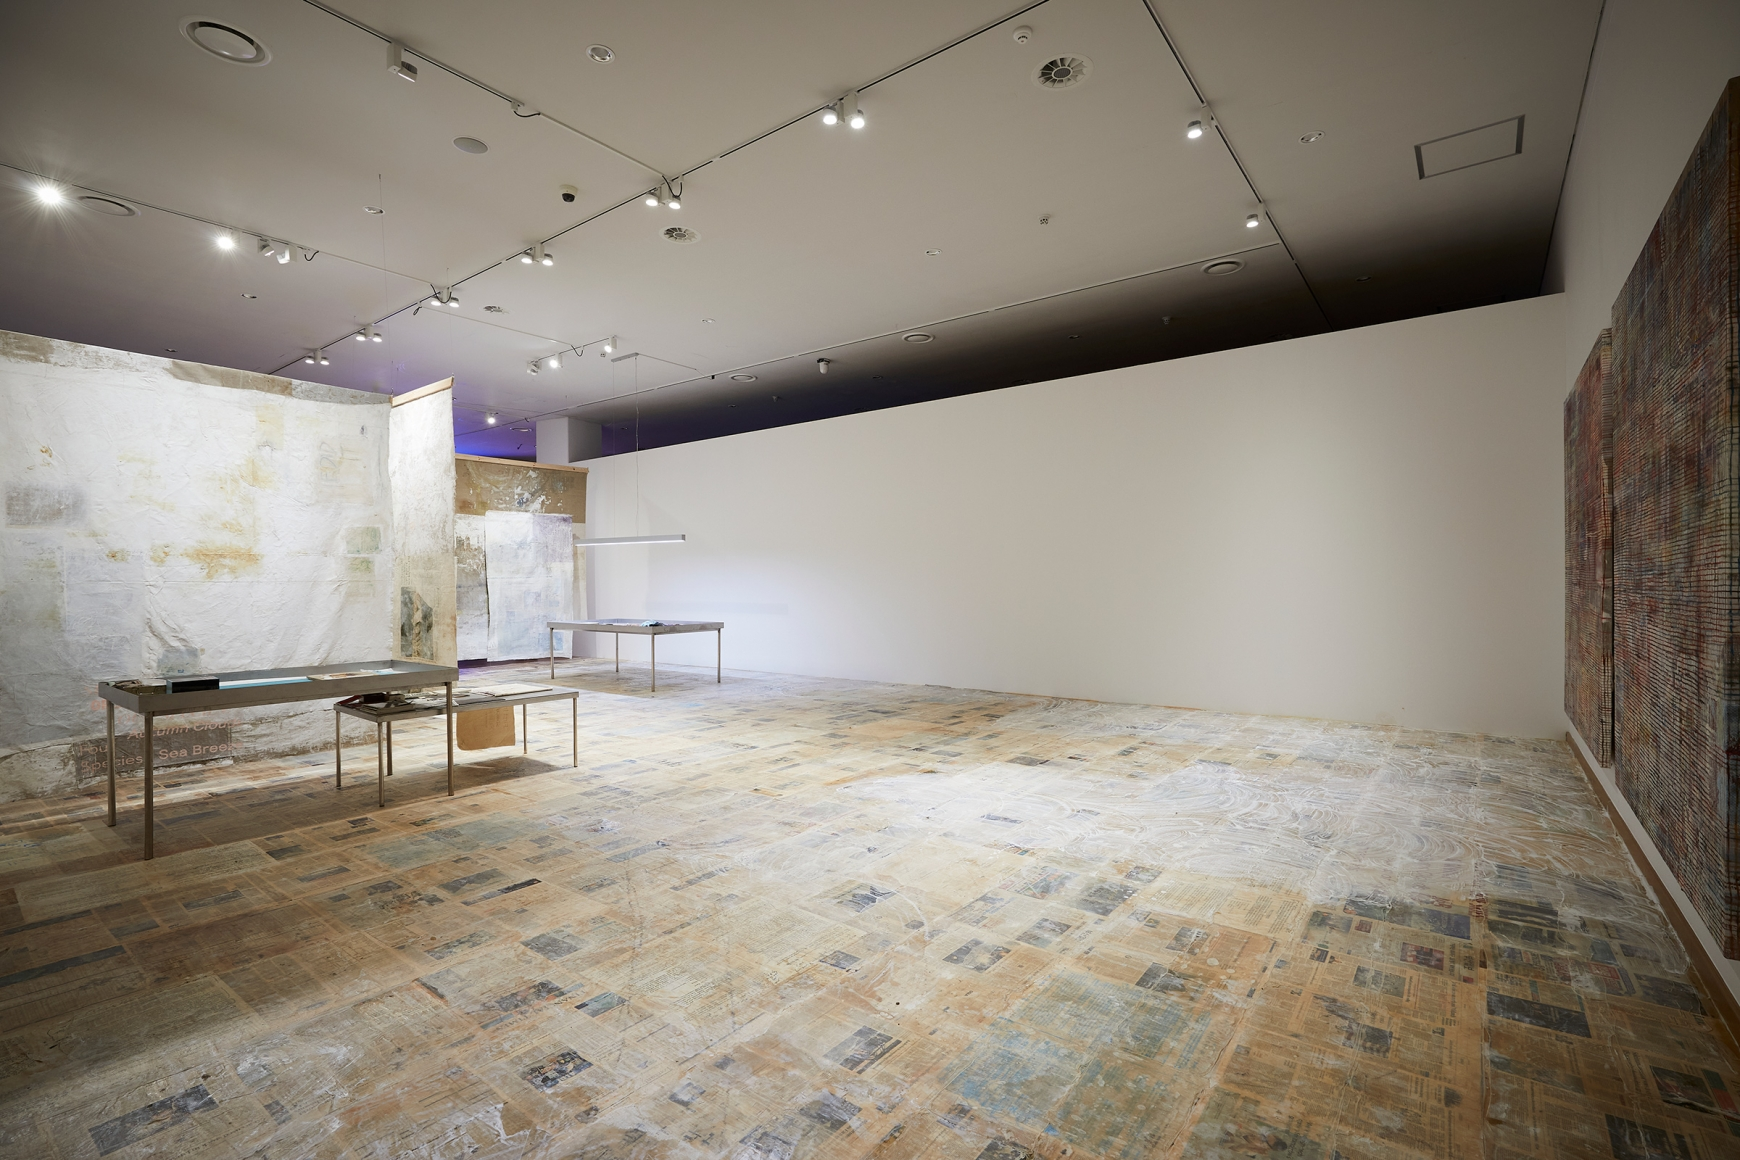 MANDY EL-SAYEGH, What's it called? Nothing, I just collect stuff, I'm a yard man, 2020